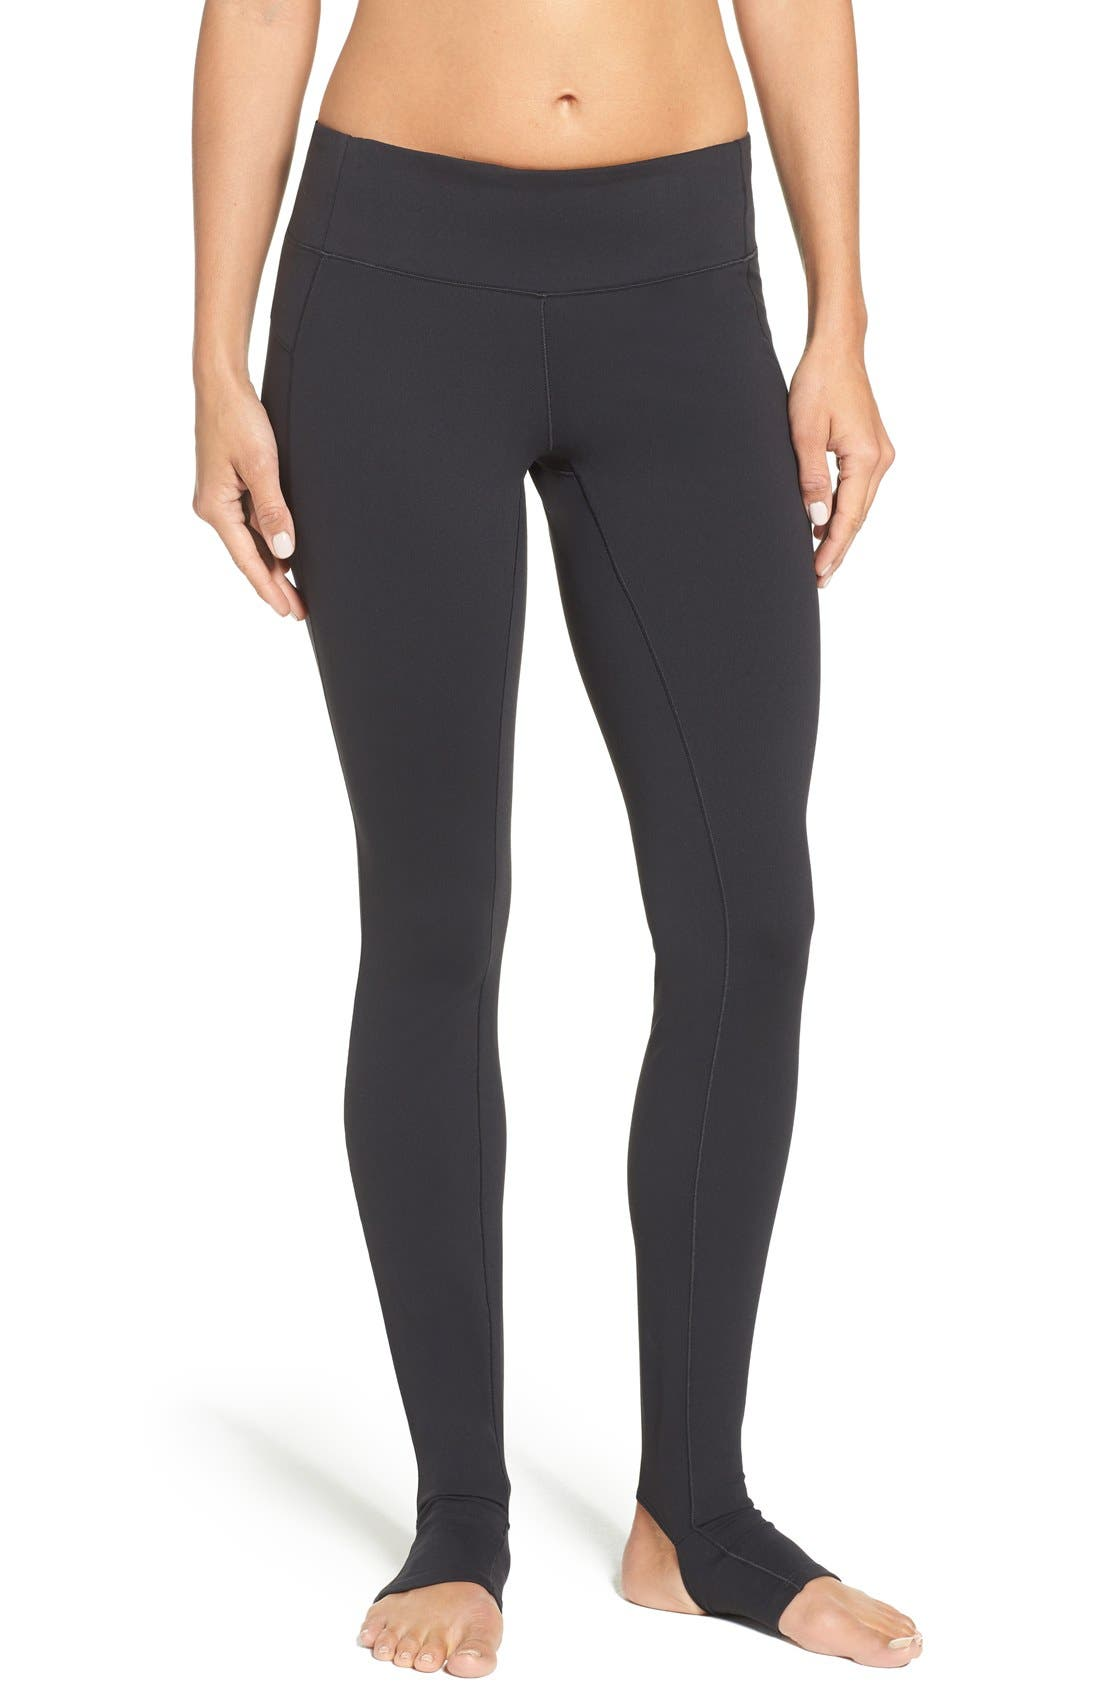 Foiled Stirrup Tights,                         Main,                         color, 001